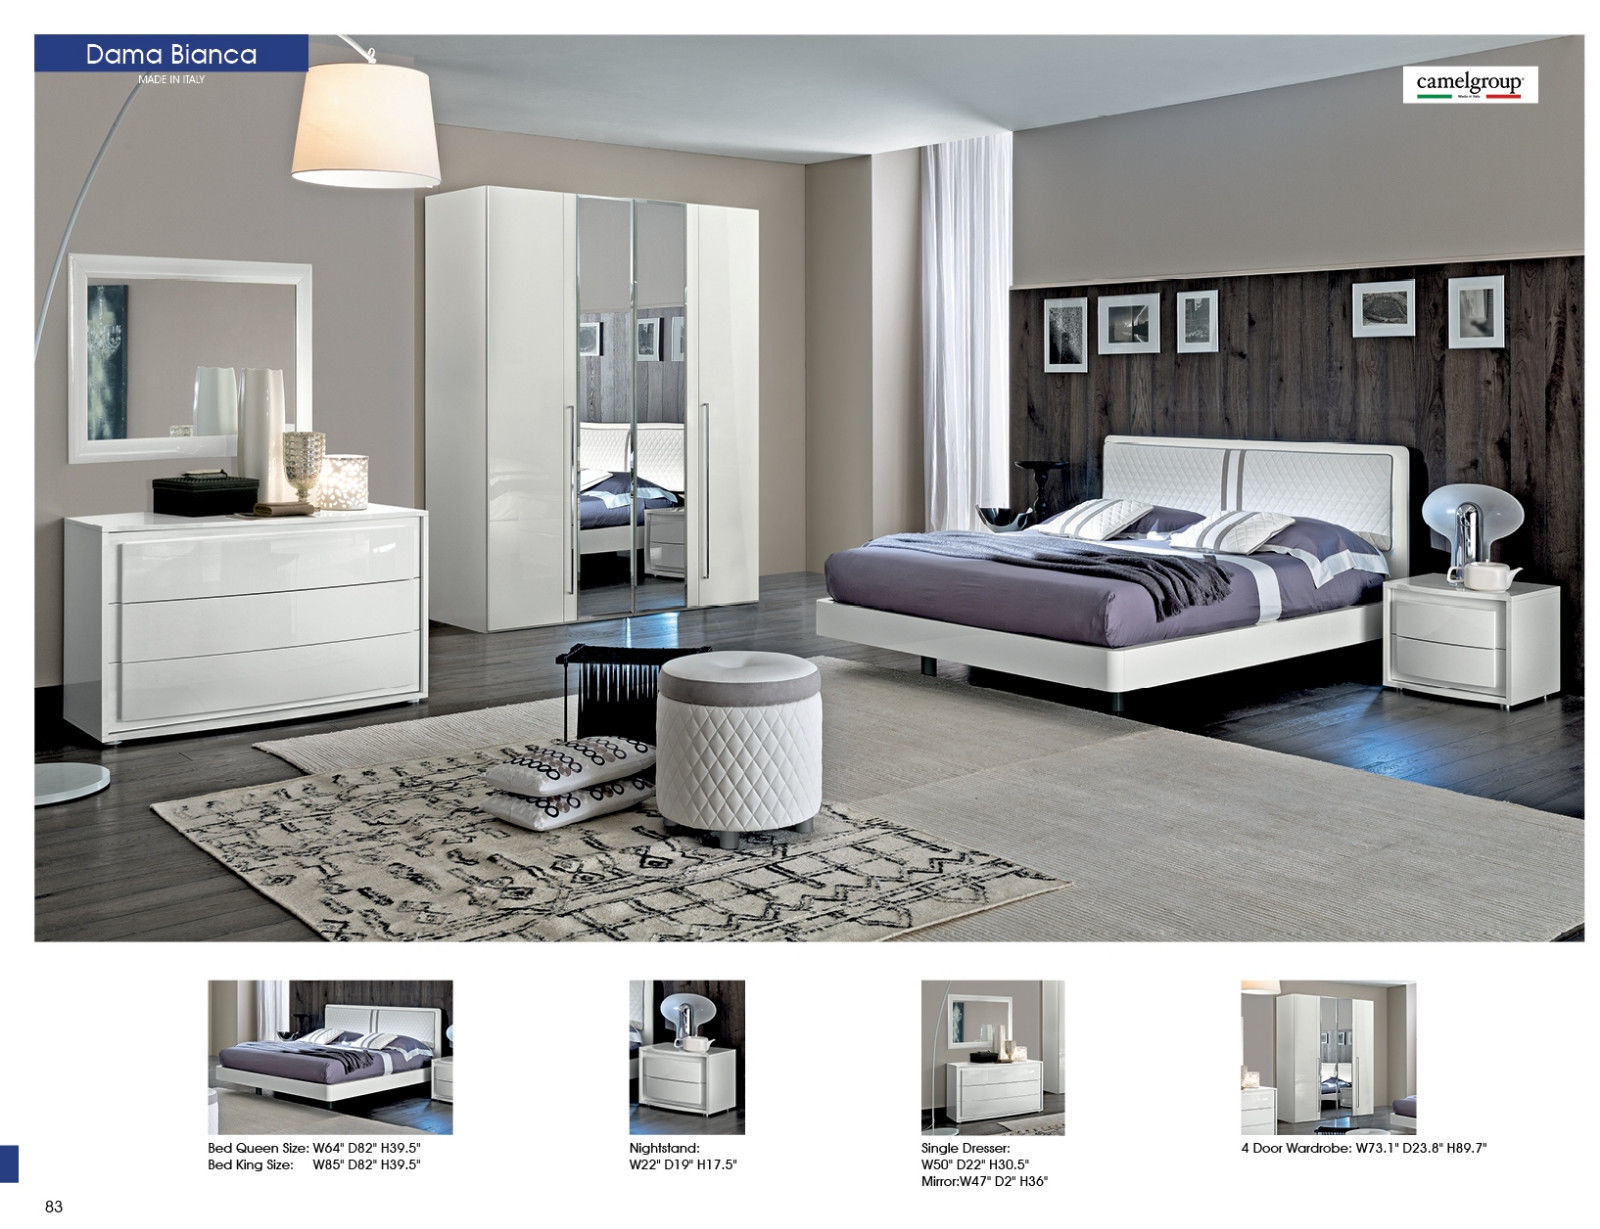 ESF Dama Bianca King Size Bedroom Set Chic Contemporary Modern 2 Night Stands